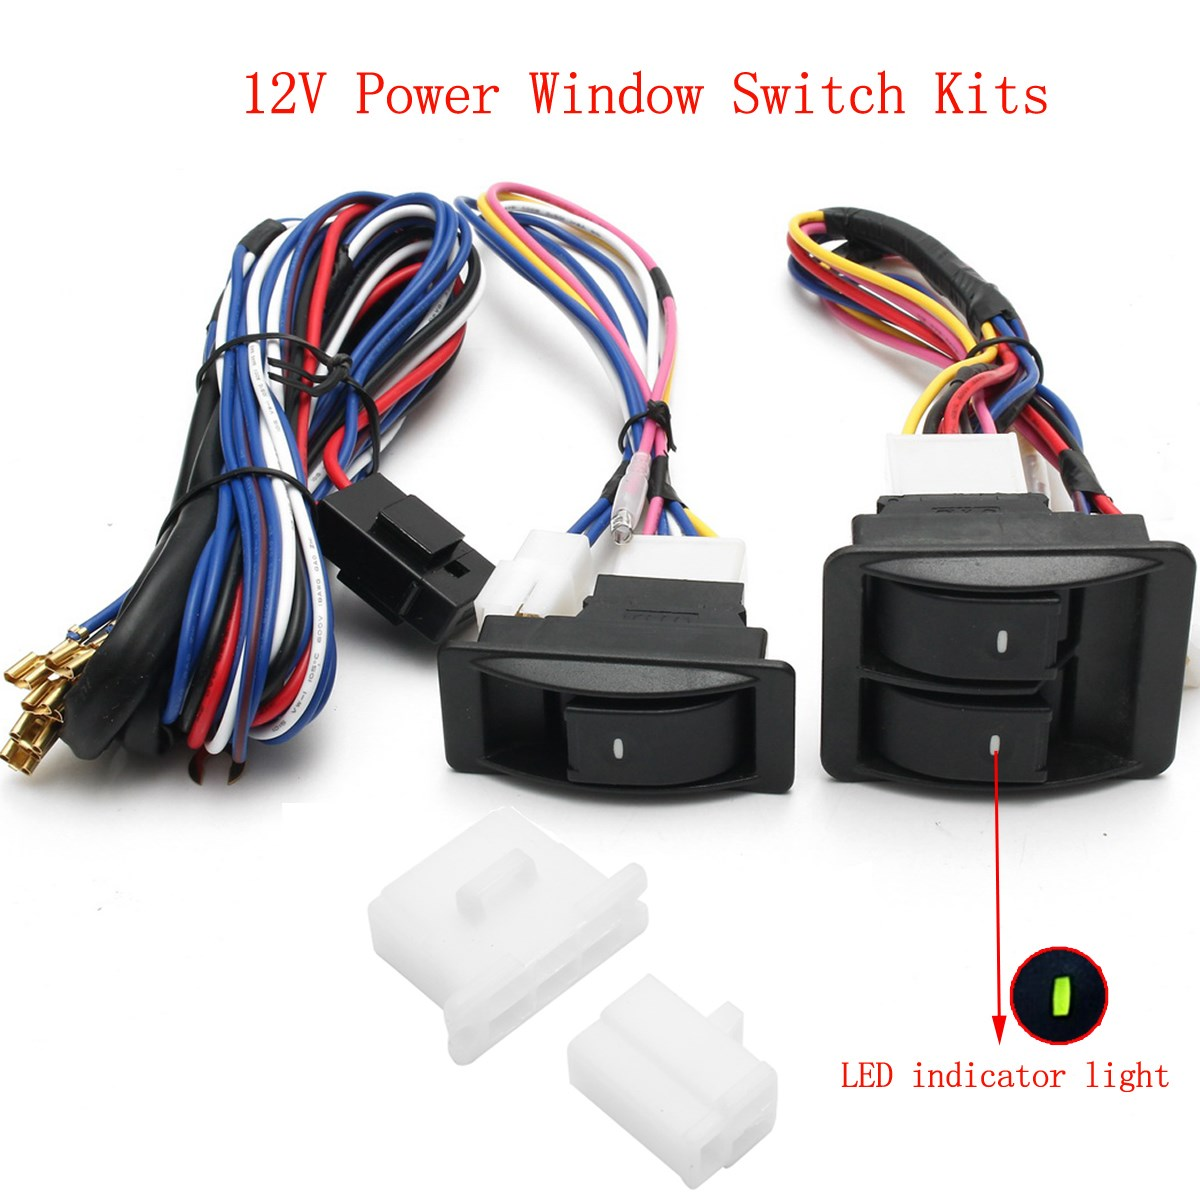 Picing Ford Wiring Harness Kits Library Universal 6pcs 12v Power Window Switch With Installation